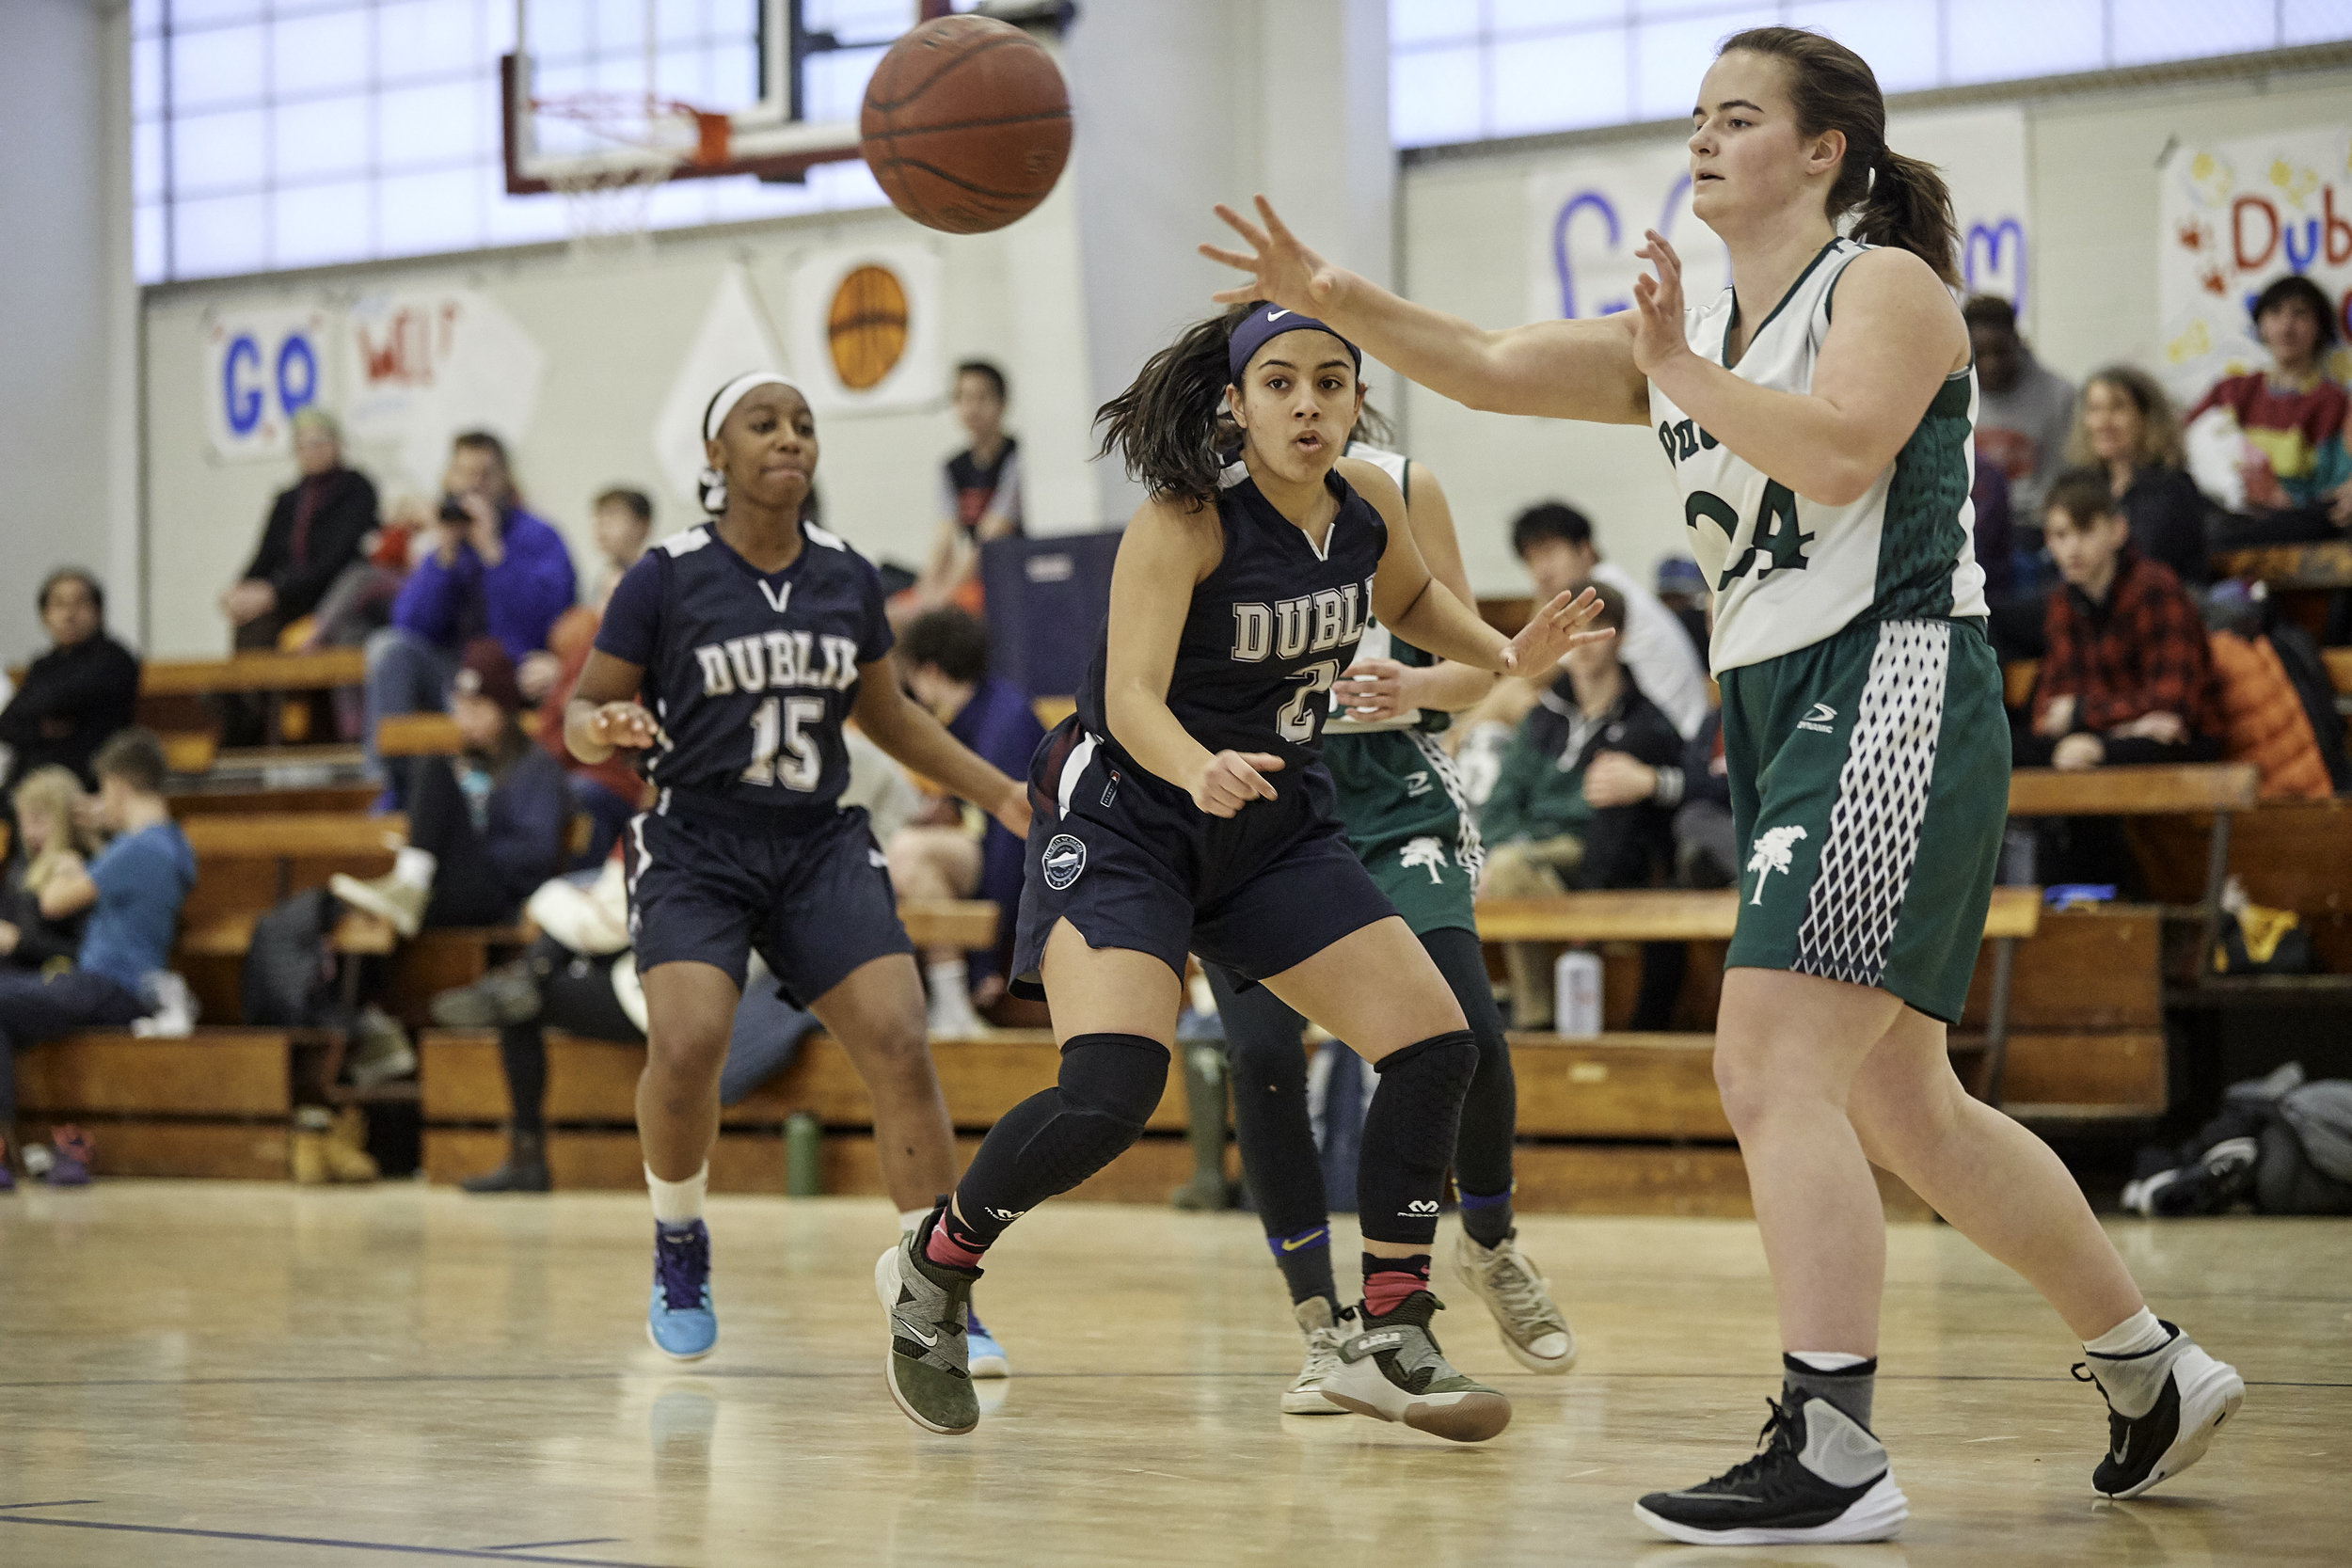 Basketball vs Putney School, February 9, 2019 - 167119.jpg